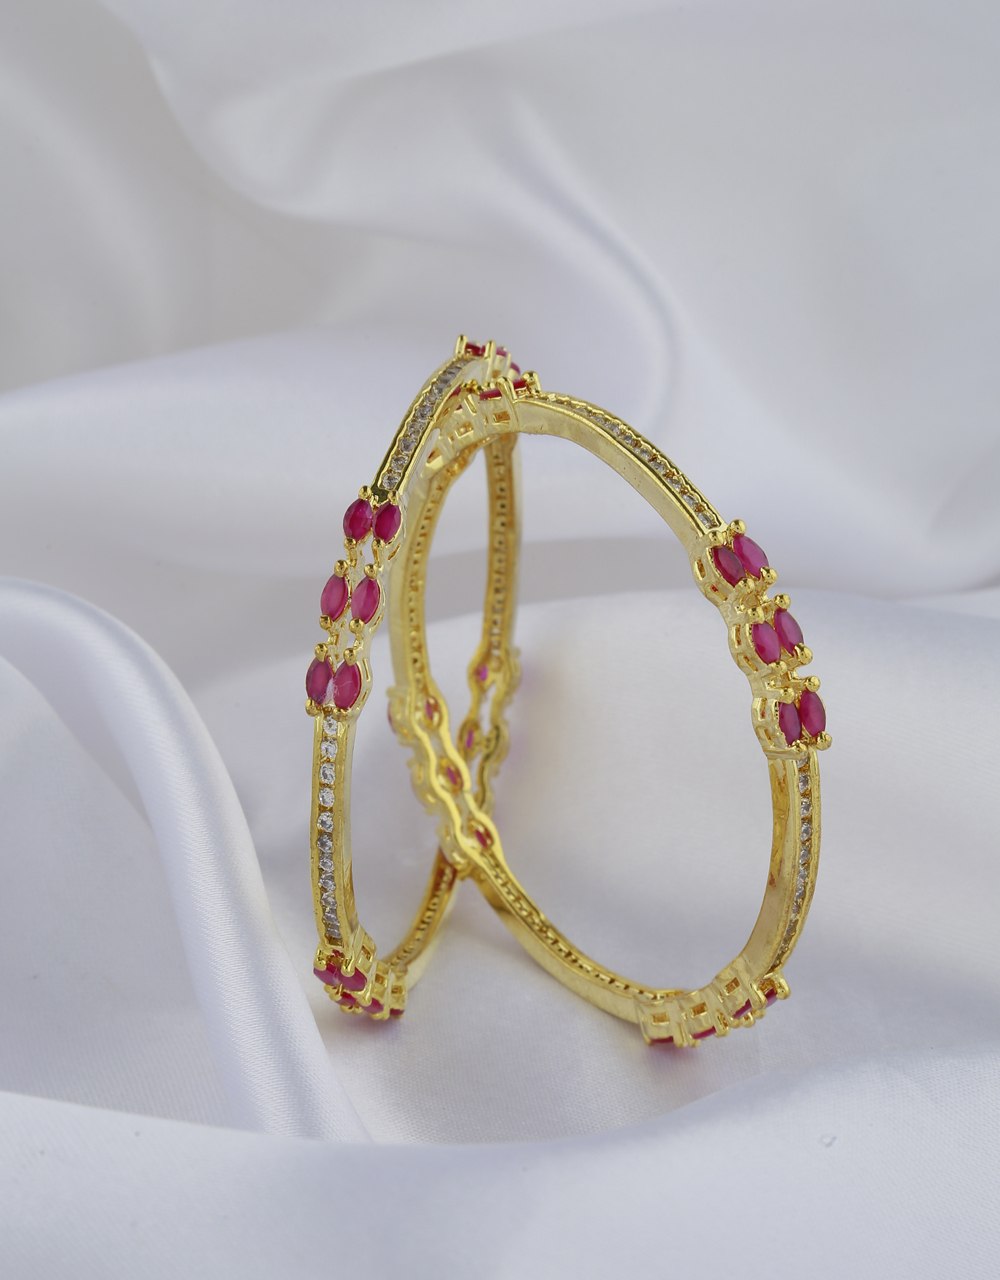 Dazzling Pink Stones Studded With Golden Matt Finishing Designer Fancy Bangles.